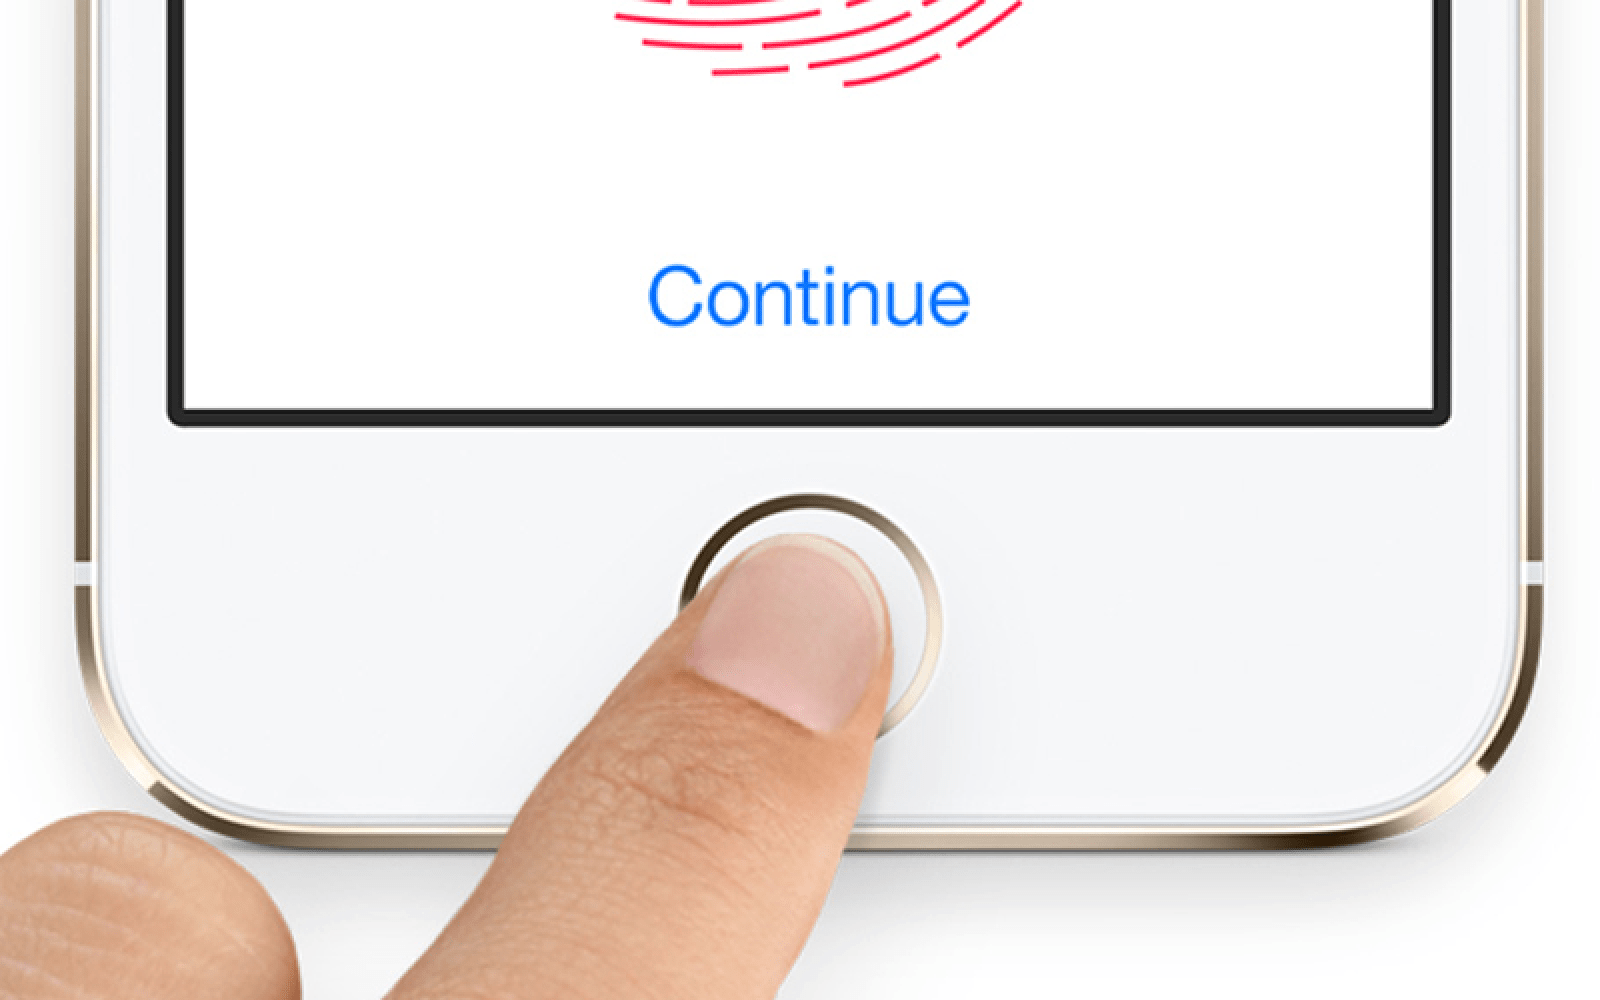 The end of plastic cards nears: Over 70,000 ATMs will soon support Touch ID withdrawals